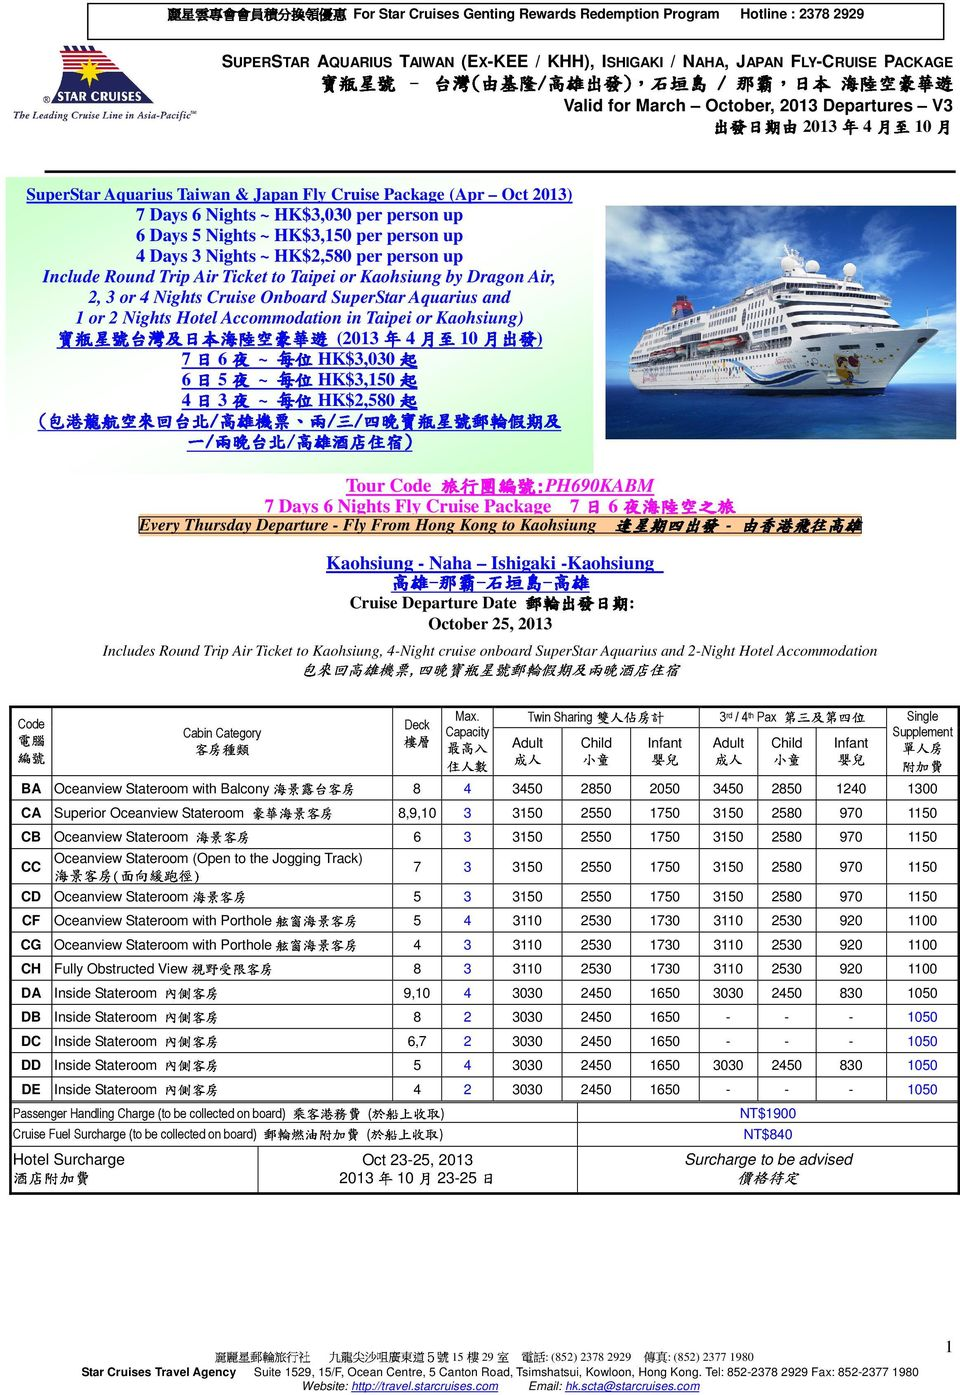 HK$3,150 per person up 4 Days 3 Nights ~ HK$2,580 per person up ( Include 包 寶 瓶 星 號 台 灣 及 本 海 陸 空 豪 華 遊 年 至 出 發 港 龍 航 Round 空 來 回 Trip 台 Air Ticket to Taipei or Kaohsiung by Dragon Air, 2, 3 or 4